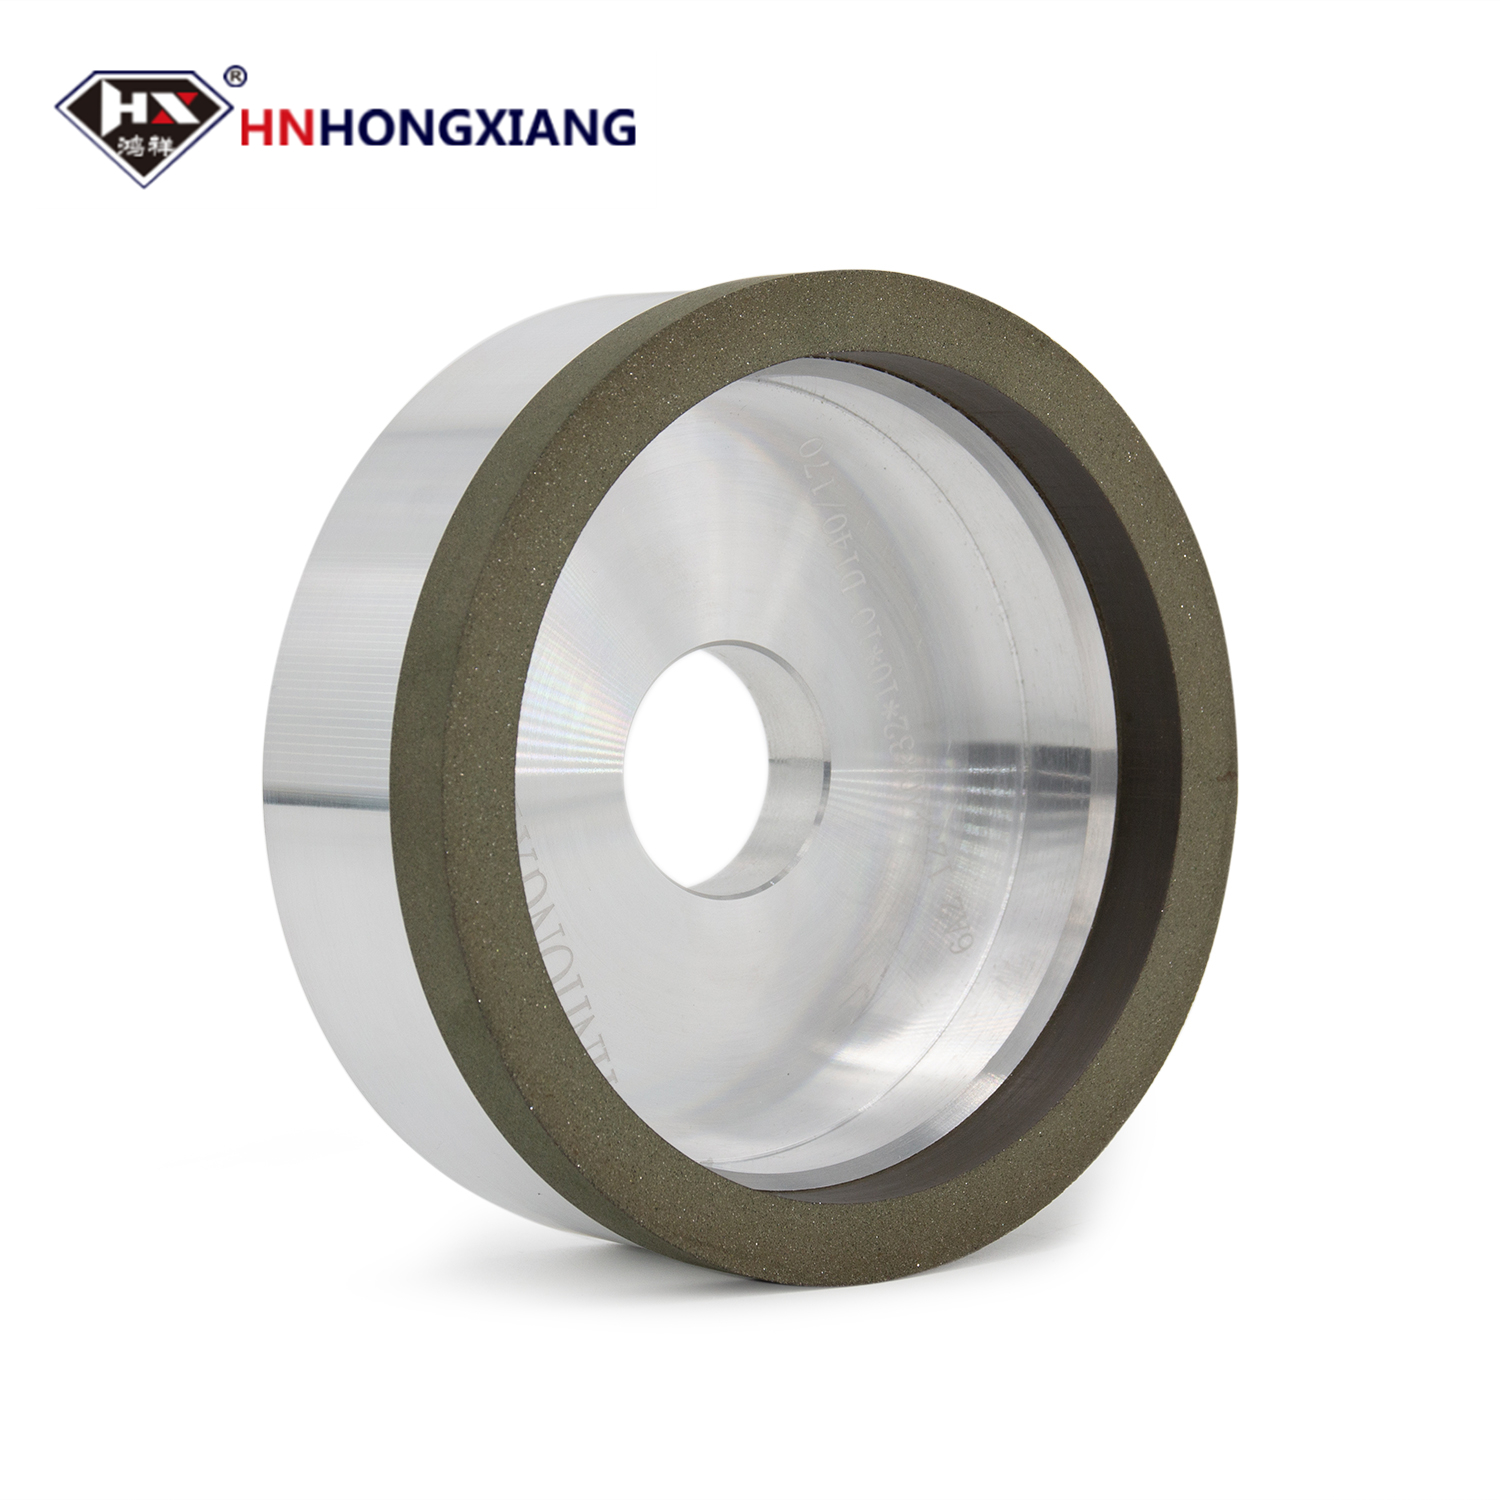 6A2 Resin Bond Grinding Wheel For Grinding And Finishing Cutting Tools